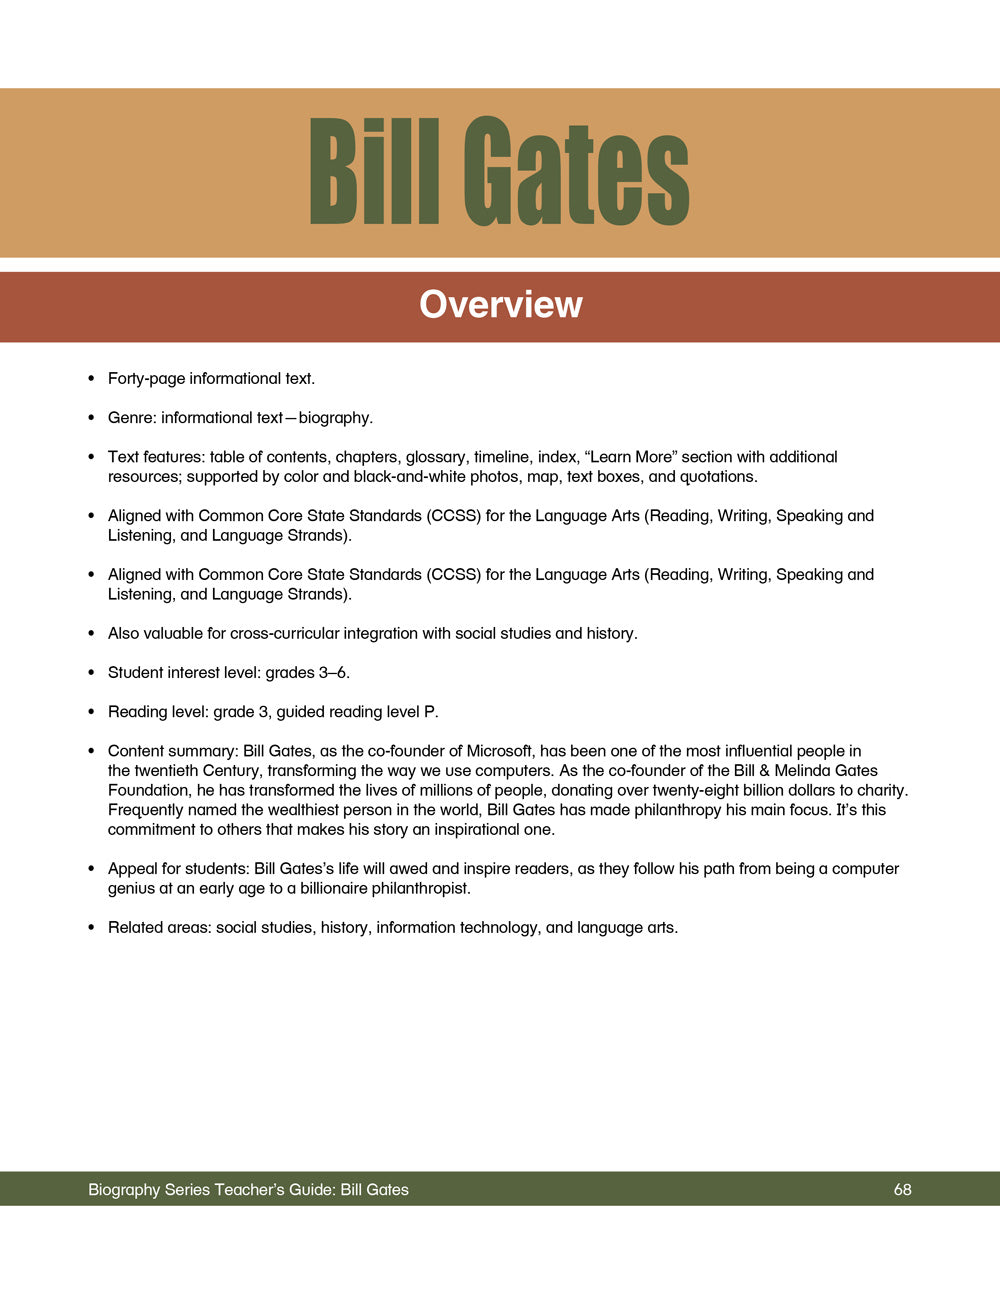 Bill Gates Teacher's Guide